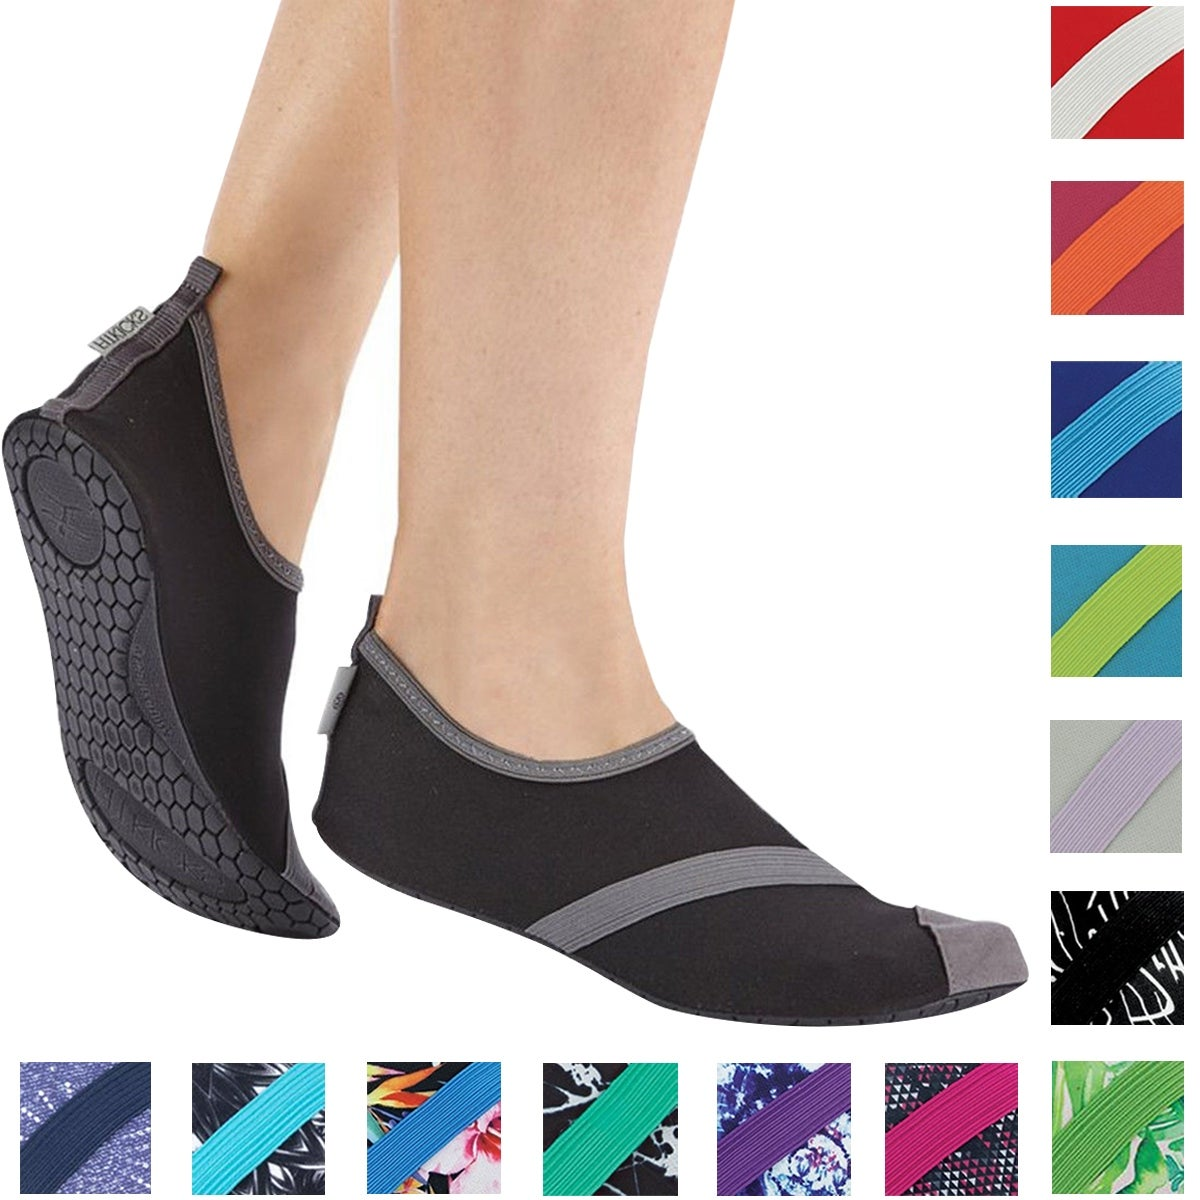 ae3b4792b2219 Buy Women's Slippers Online at Overstock   Our Best Women's Shoes Deals